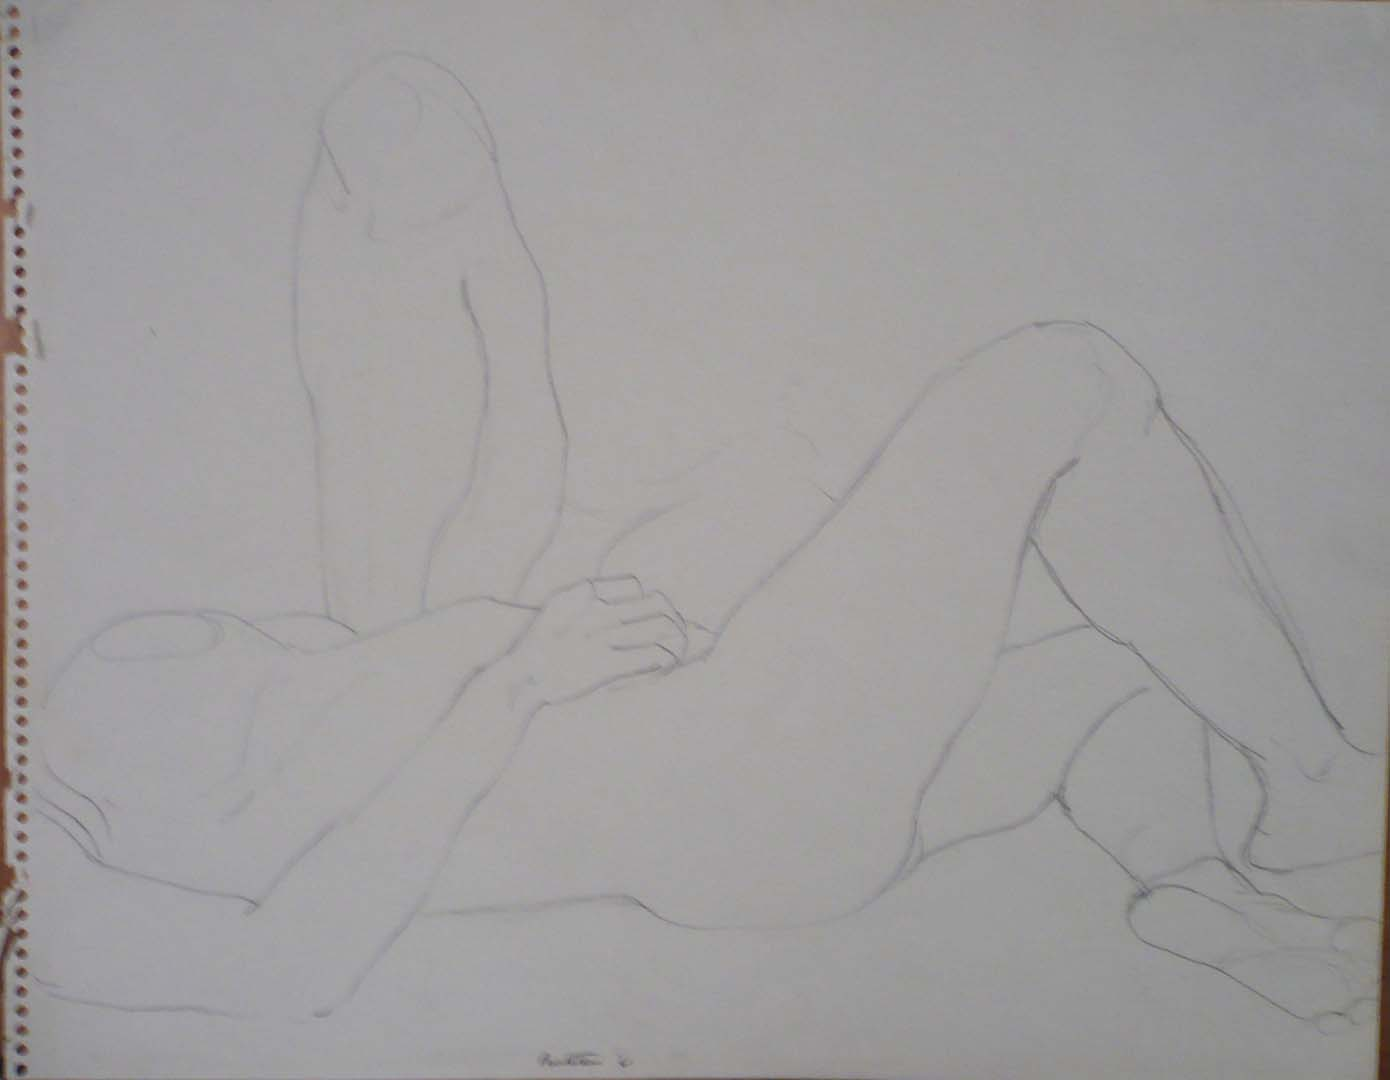 1961 Reclined Female and Leg Pencil on Paper 11 x 14